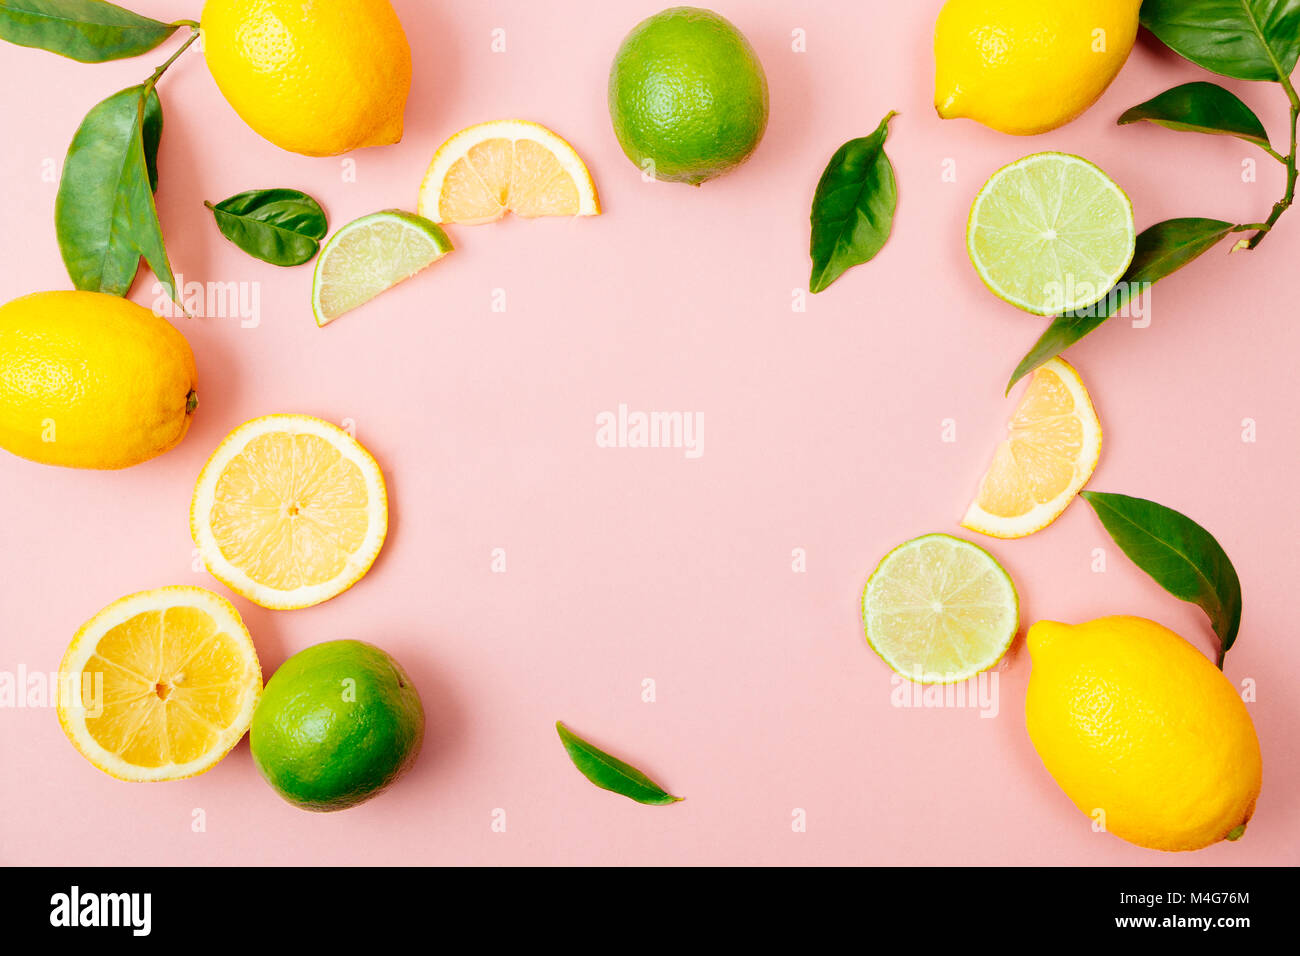 Flat lay of citrus fruits like lime and lemon with lemon tree leaves on light pink background making a frame - Stock Image